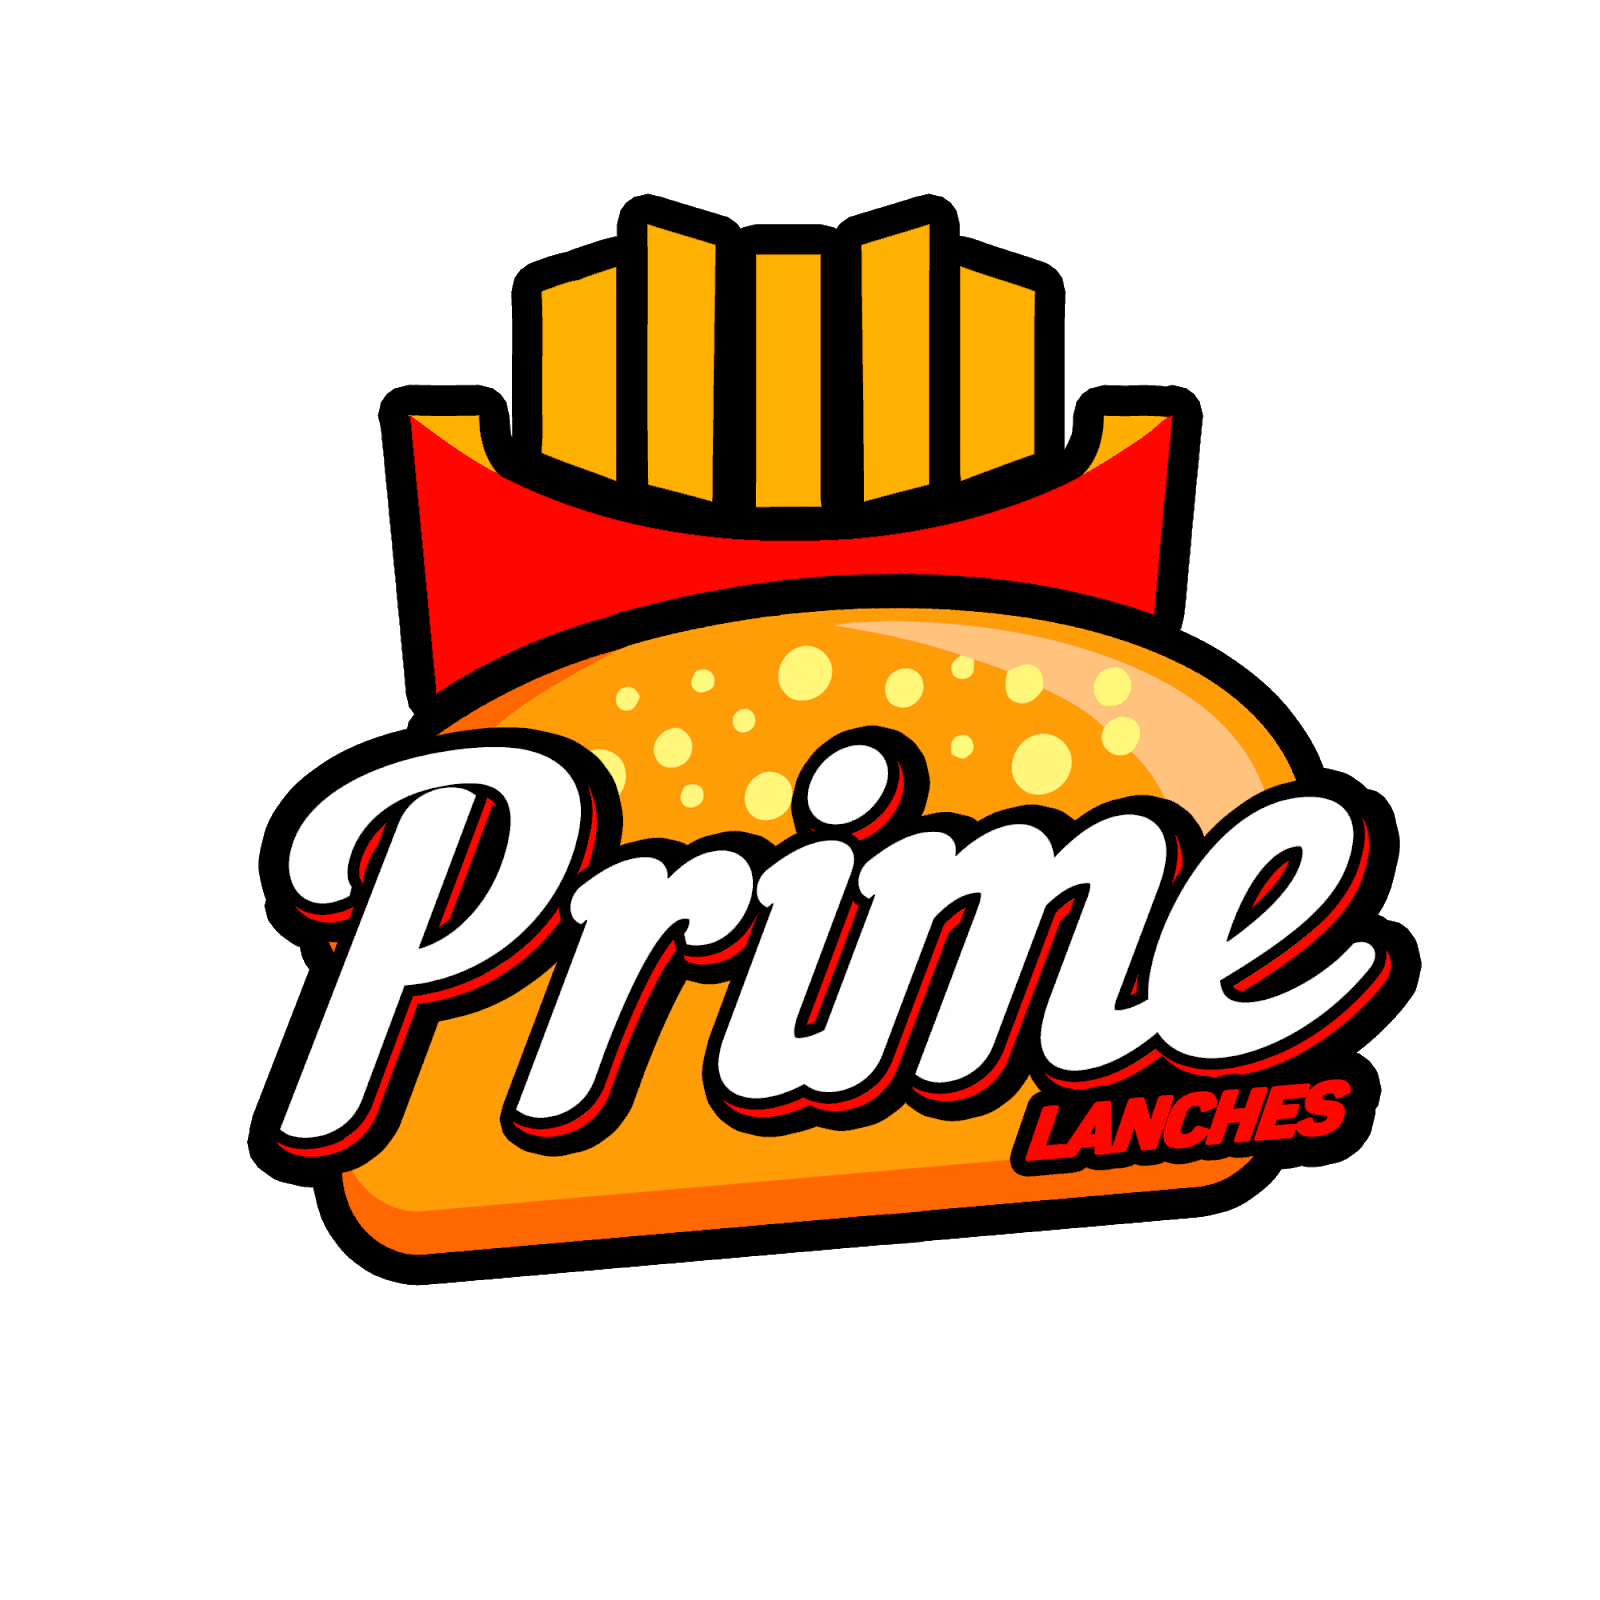 Prime Lanches